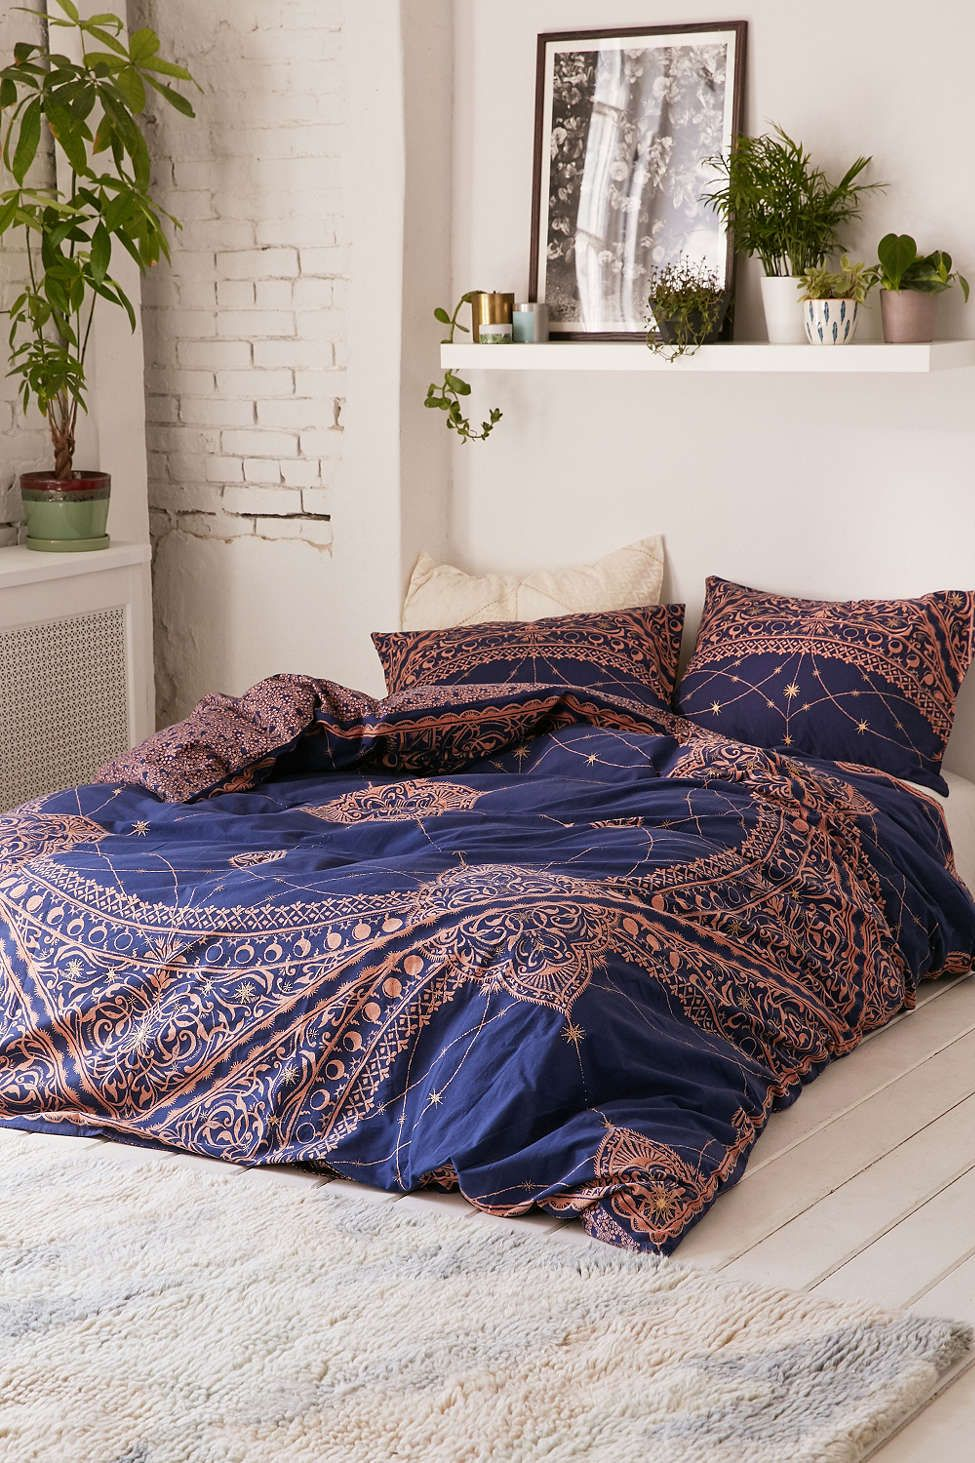 Celestial Foiled Duvet Cover Urban Outfitters Bedroom Styles